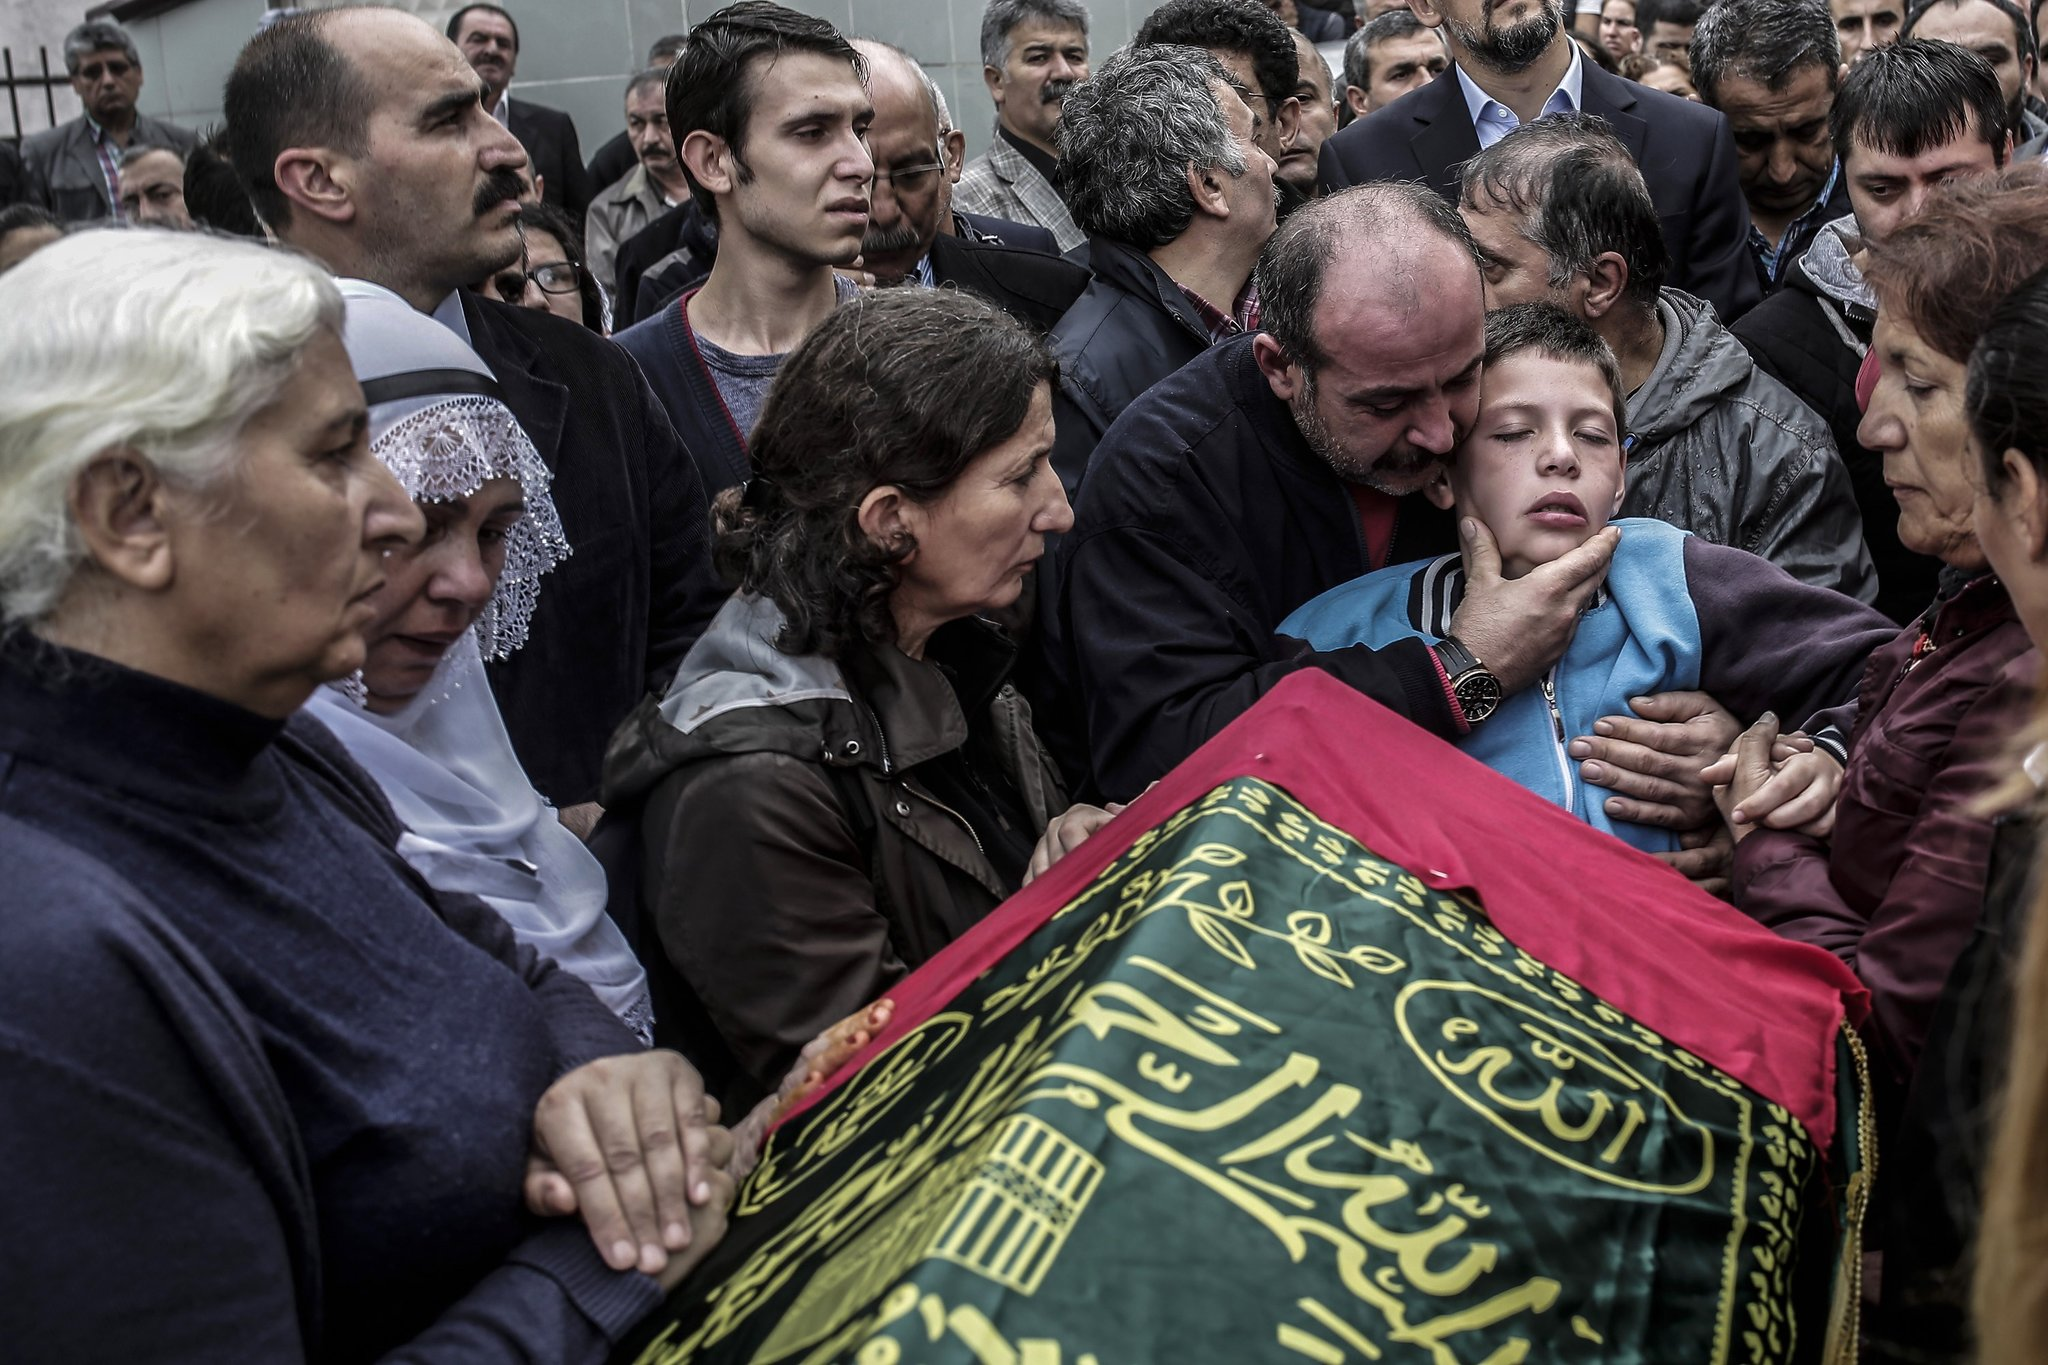 Relatives comfort nine-year-old Cayan Tuylu near the casket of his father Sarigul, a victim of the twin bombings in Ankara the day before, at his funeral in Istanbul on Sunday. Picture by Yasin Akgul | Agence France-Presse/Getty Images